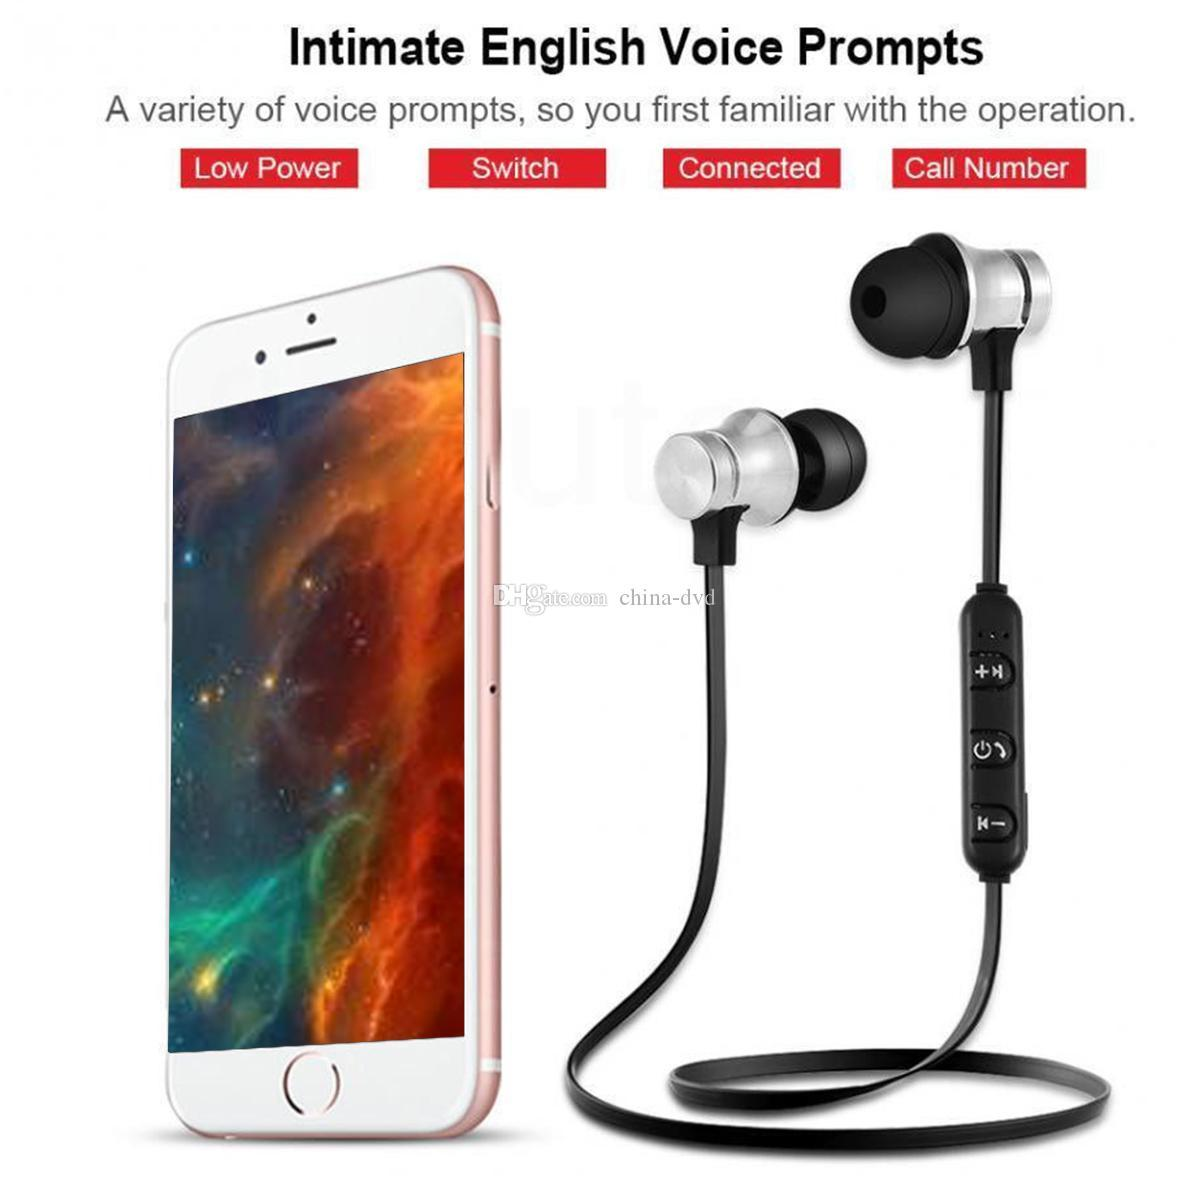 Hot XT11 Bluetooth Headphones Wireless Sport Earphones Headsets BT 4.2 with Mic MP3 Earbud For Phone LG Smartphones with Retail Box